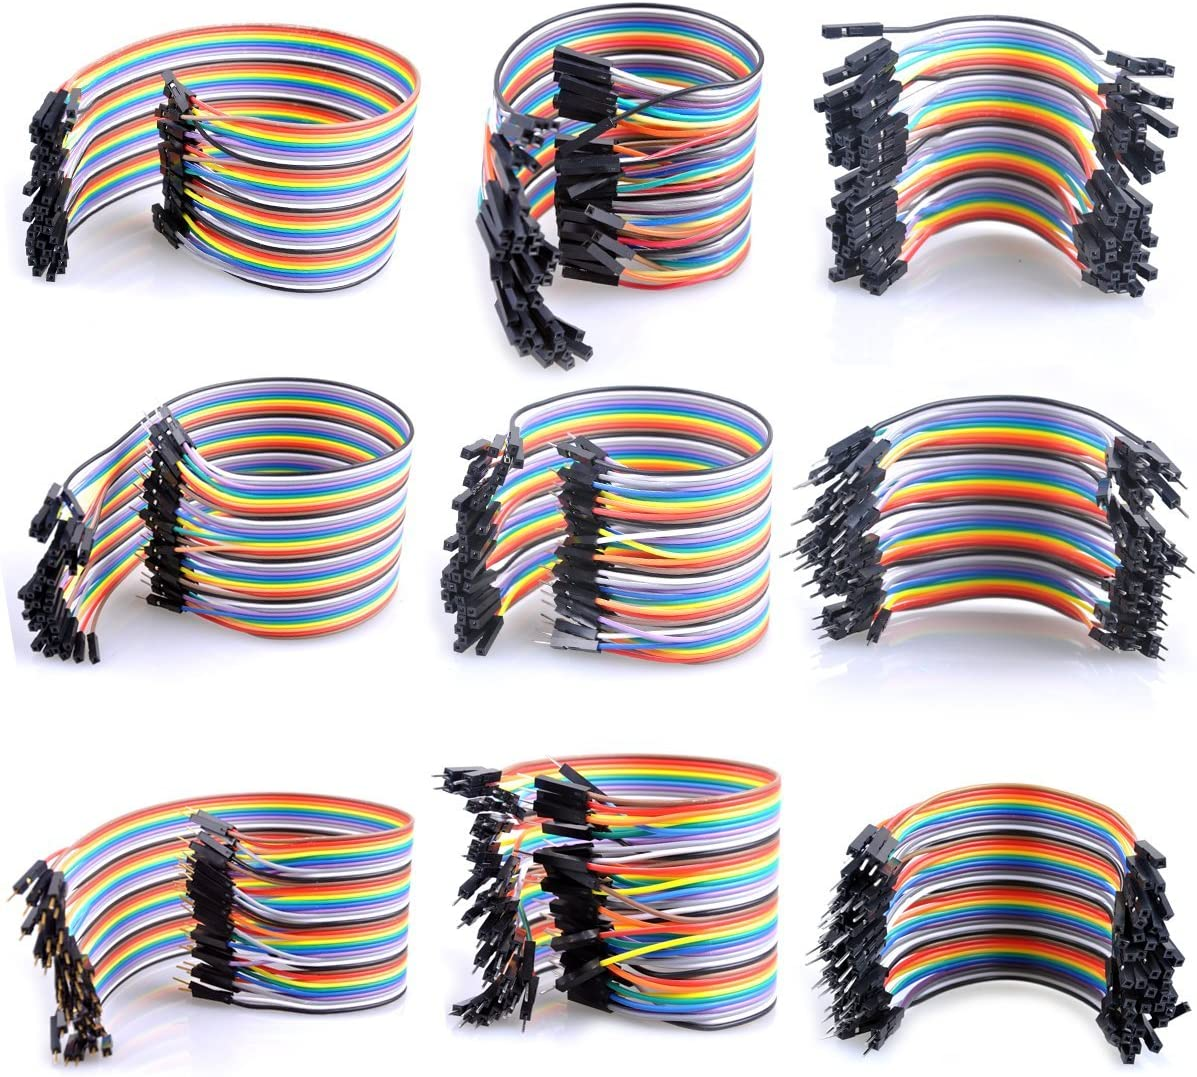 UCEC Breadboard Jumper Wires Ribbon Cables Kit Include Female to Male /& Female to Female /& Male to Male